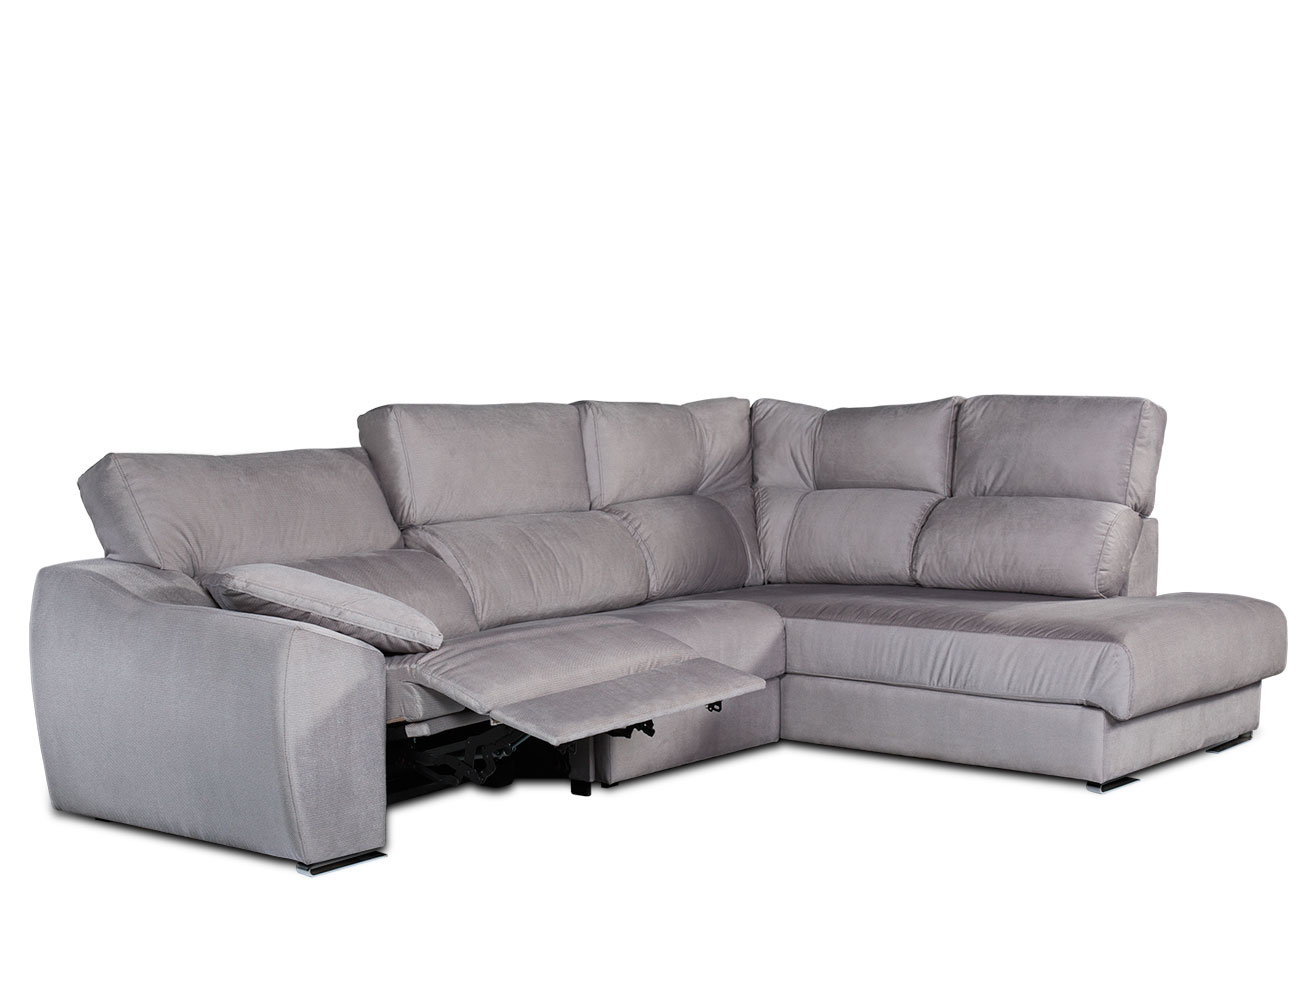 Sofa chaiselongue rincon electrico 211